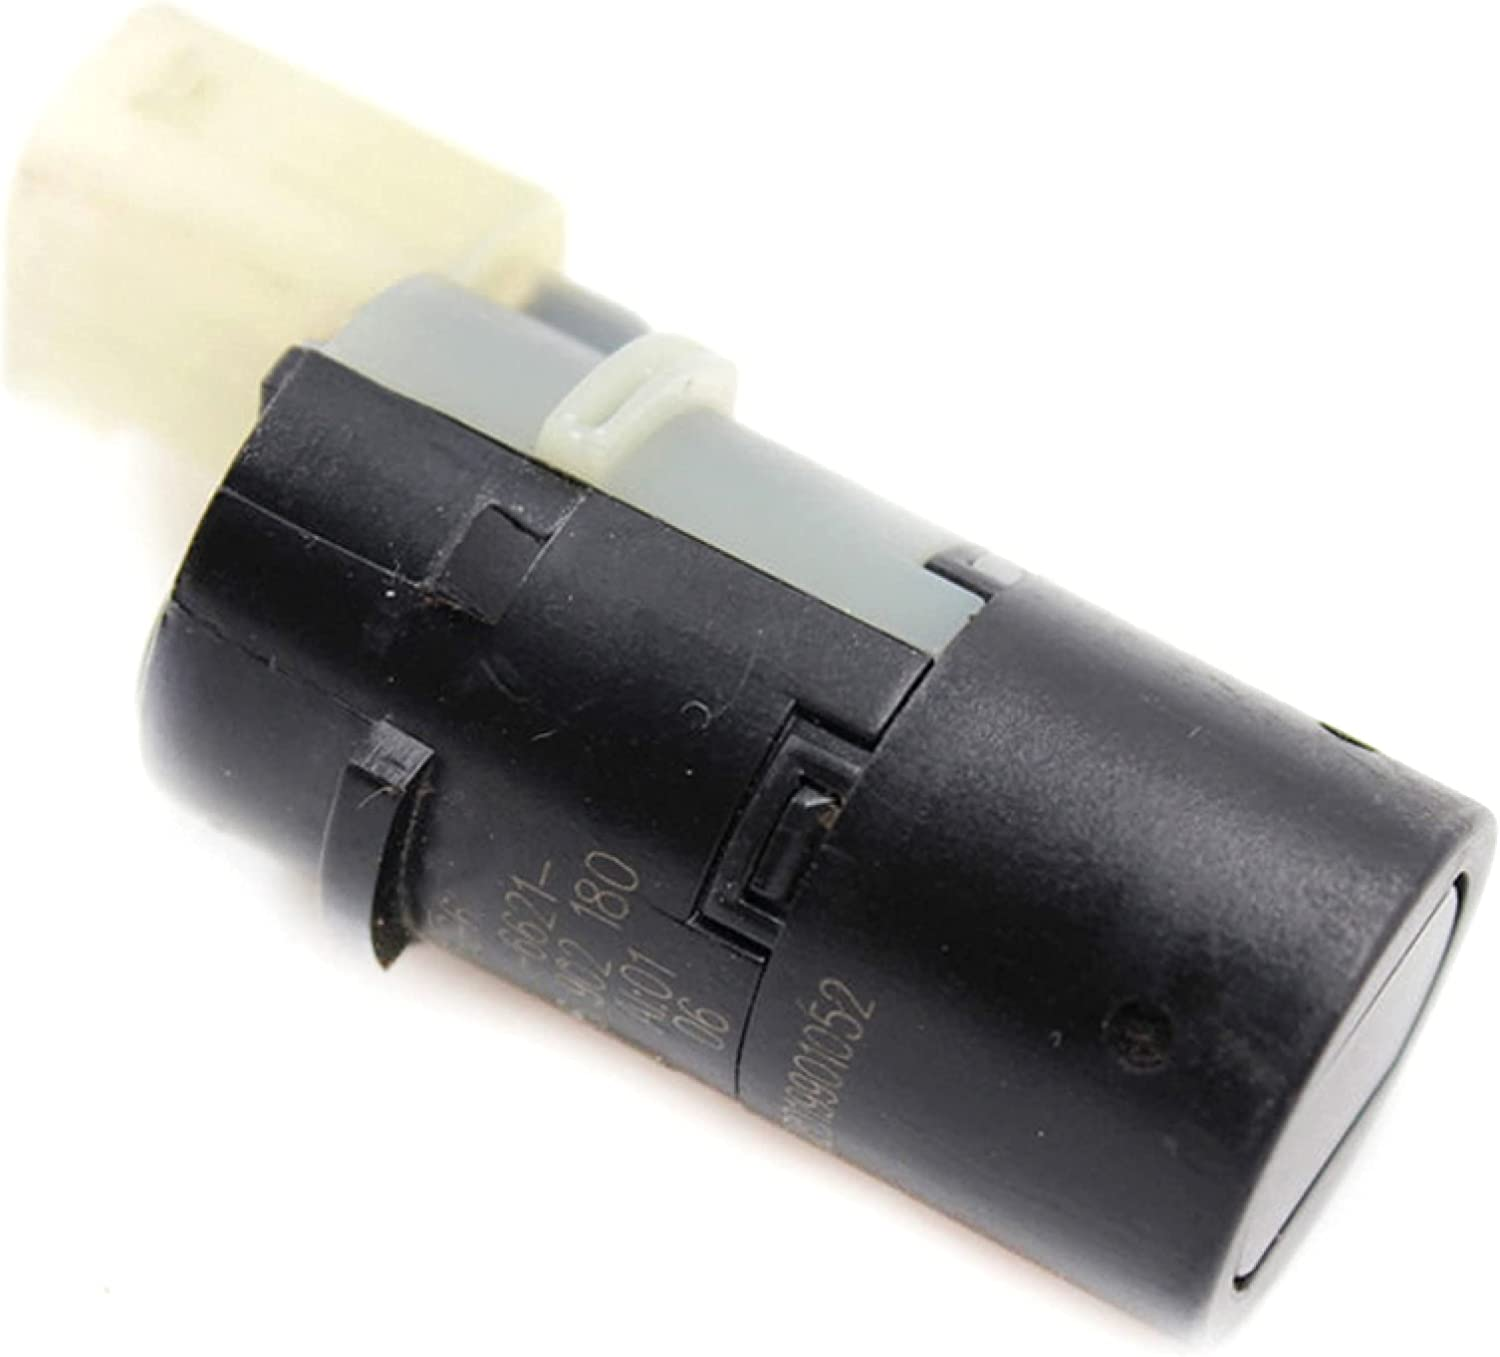 YSLR PDC Parking Sensor 66216902180 Reverse Free shipping on posting reviews Packing Rear Chicago Mall